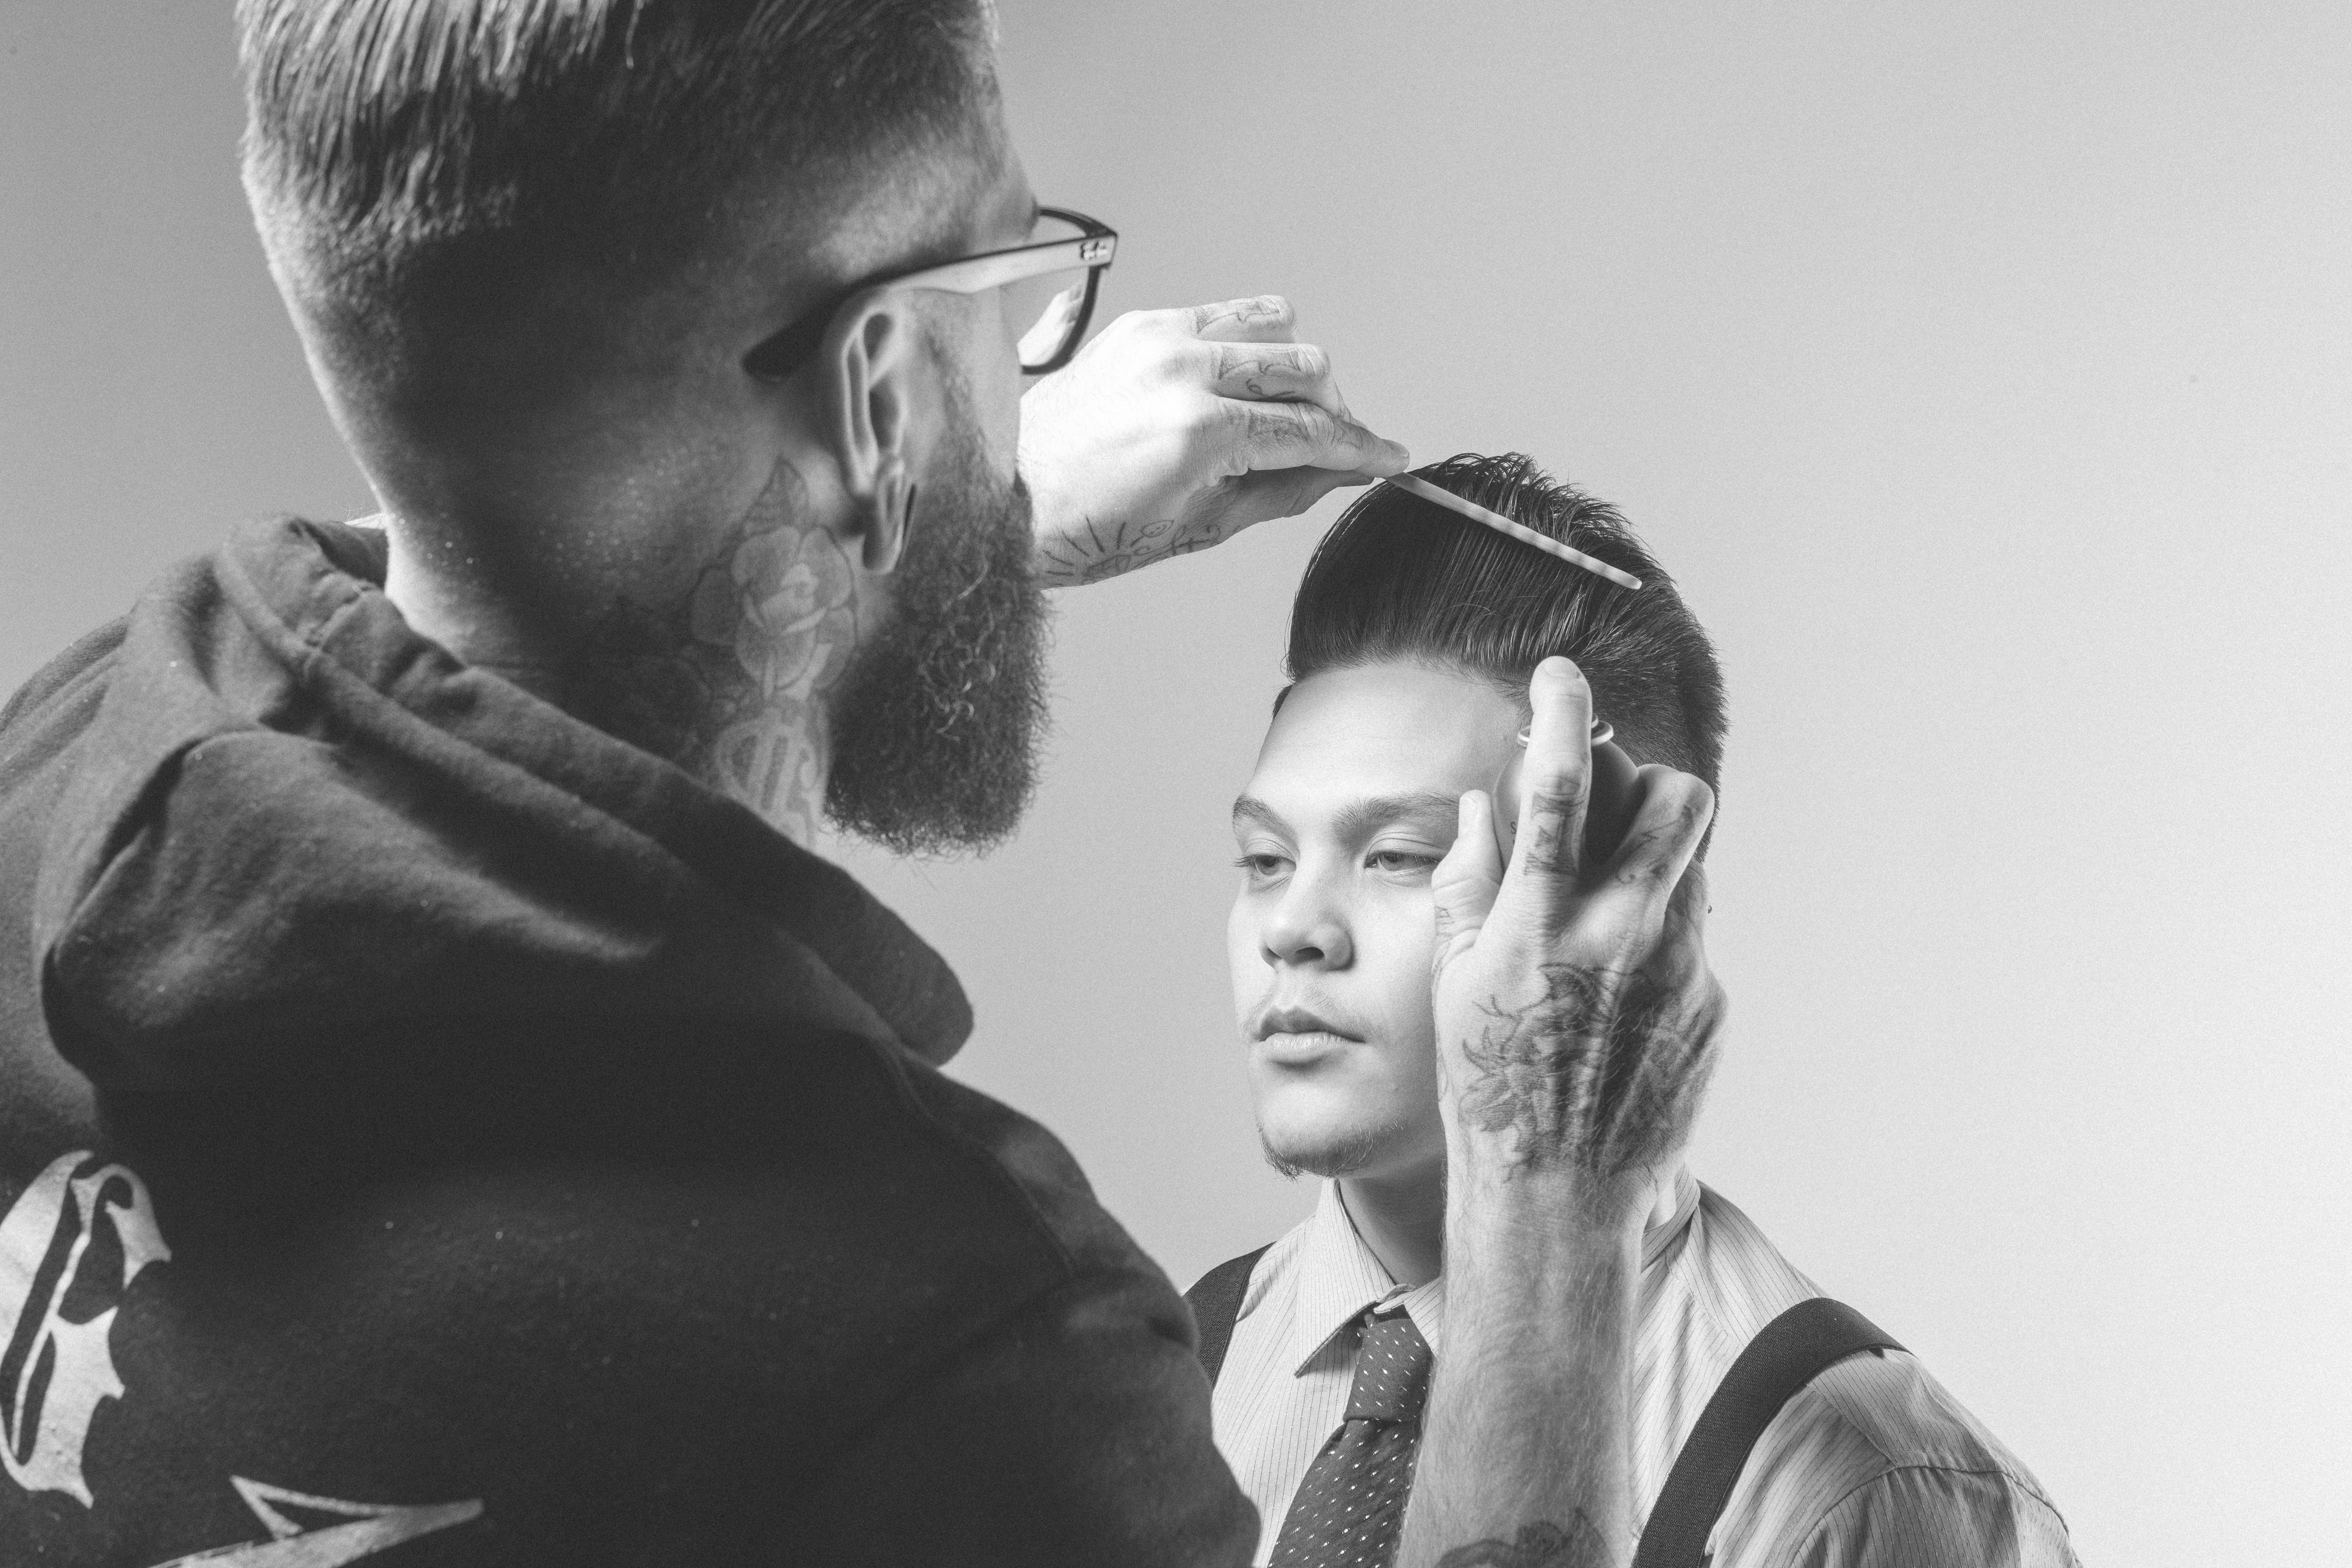 Model wearing a shirt and tie and showing a modern pompadour style getting prepped for the shoot